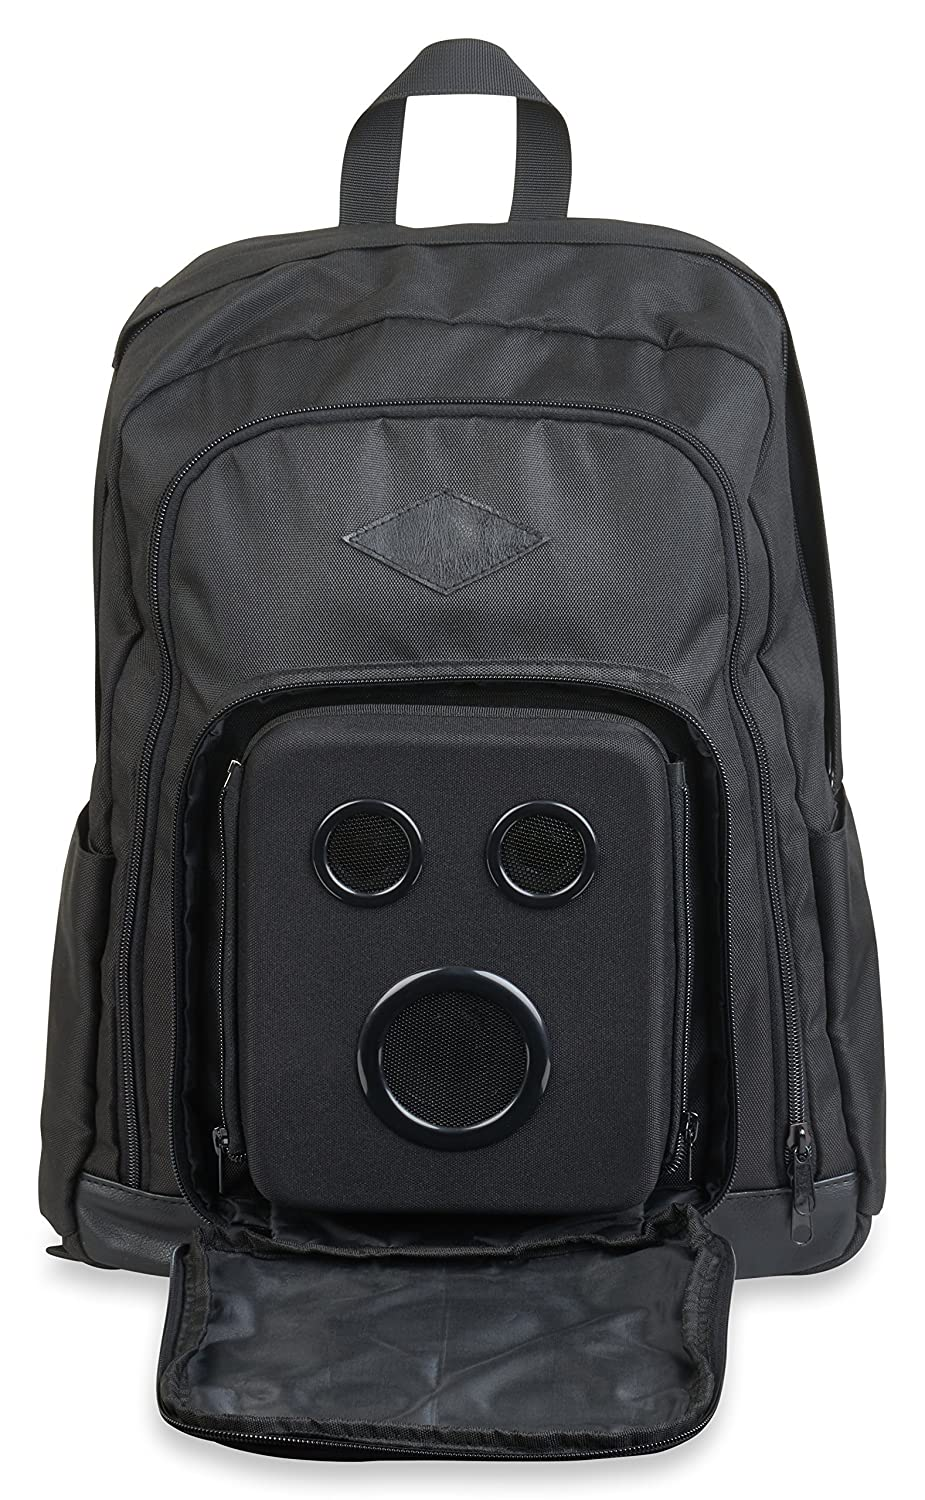 School bag riddim zip - Amazon Com The Rager Backpack The Bluetooth Speaker Backpack The Premium Backpack With Speakers Of 2017 Black Home Audio Theater